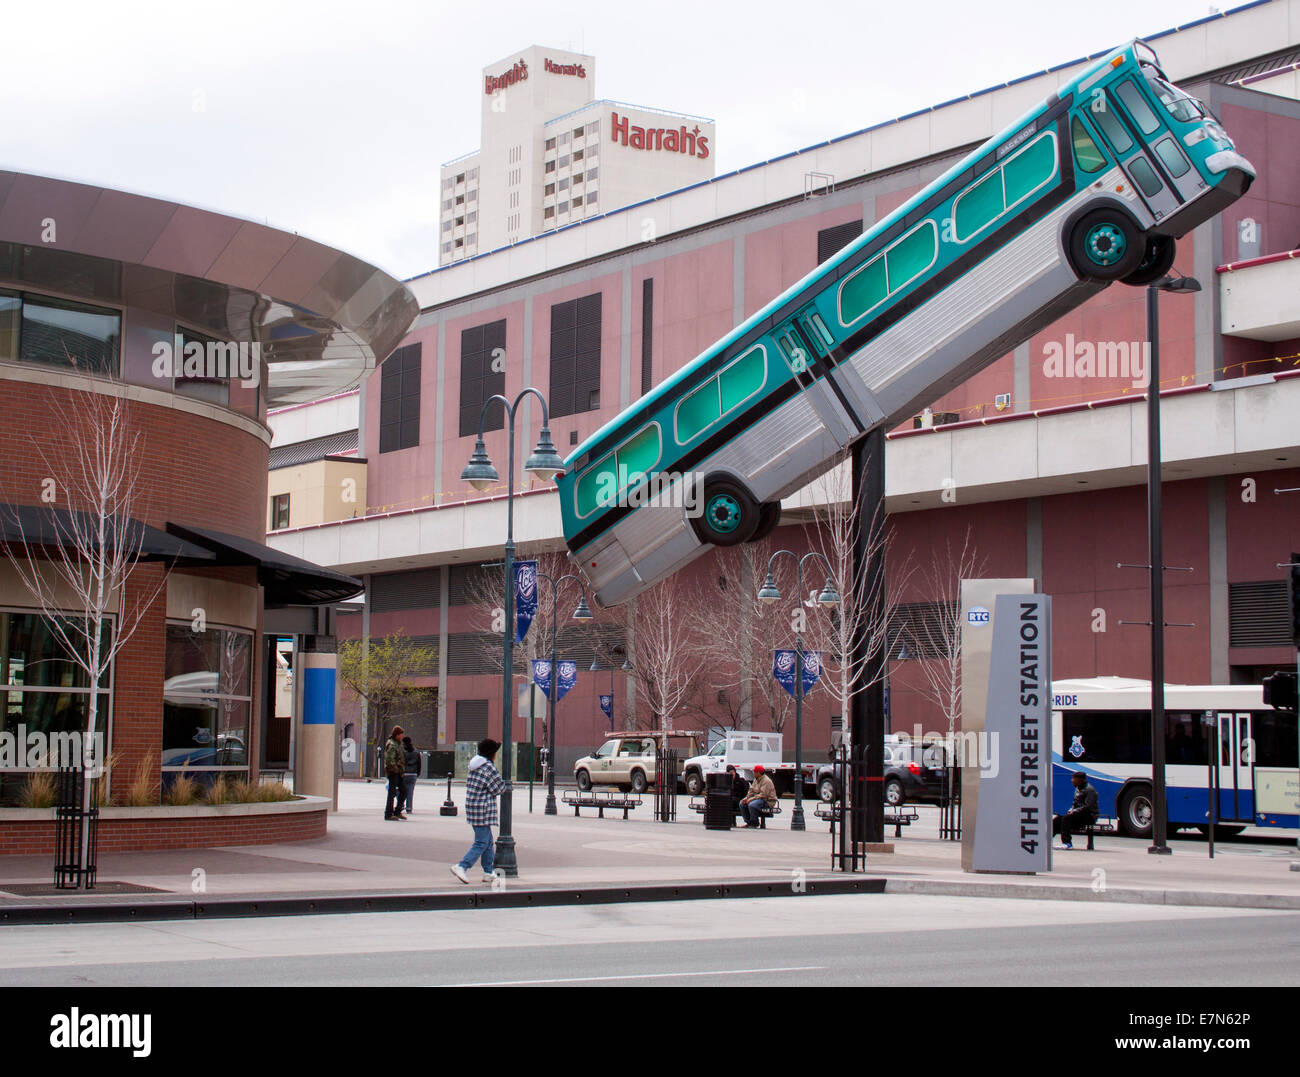 Bus on a pole in Reno Nevada - Stock Image